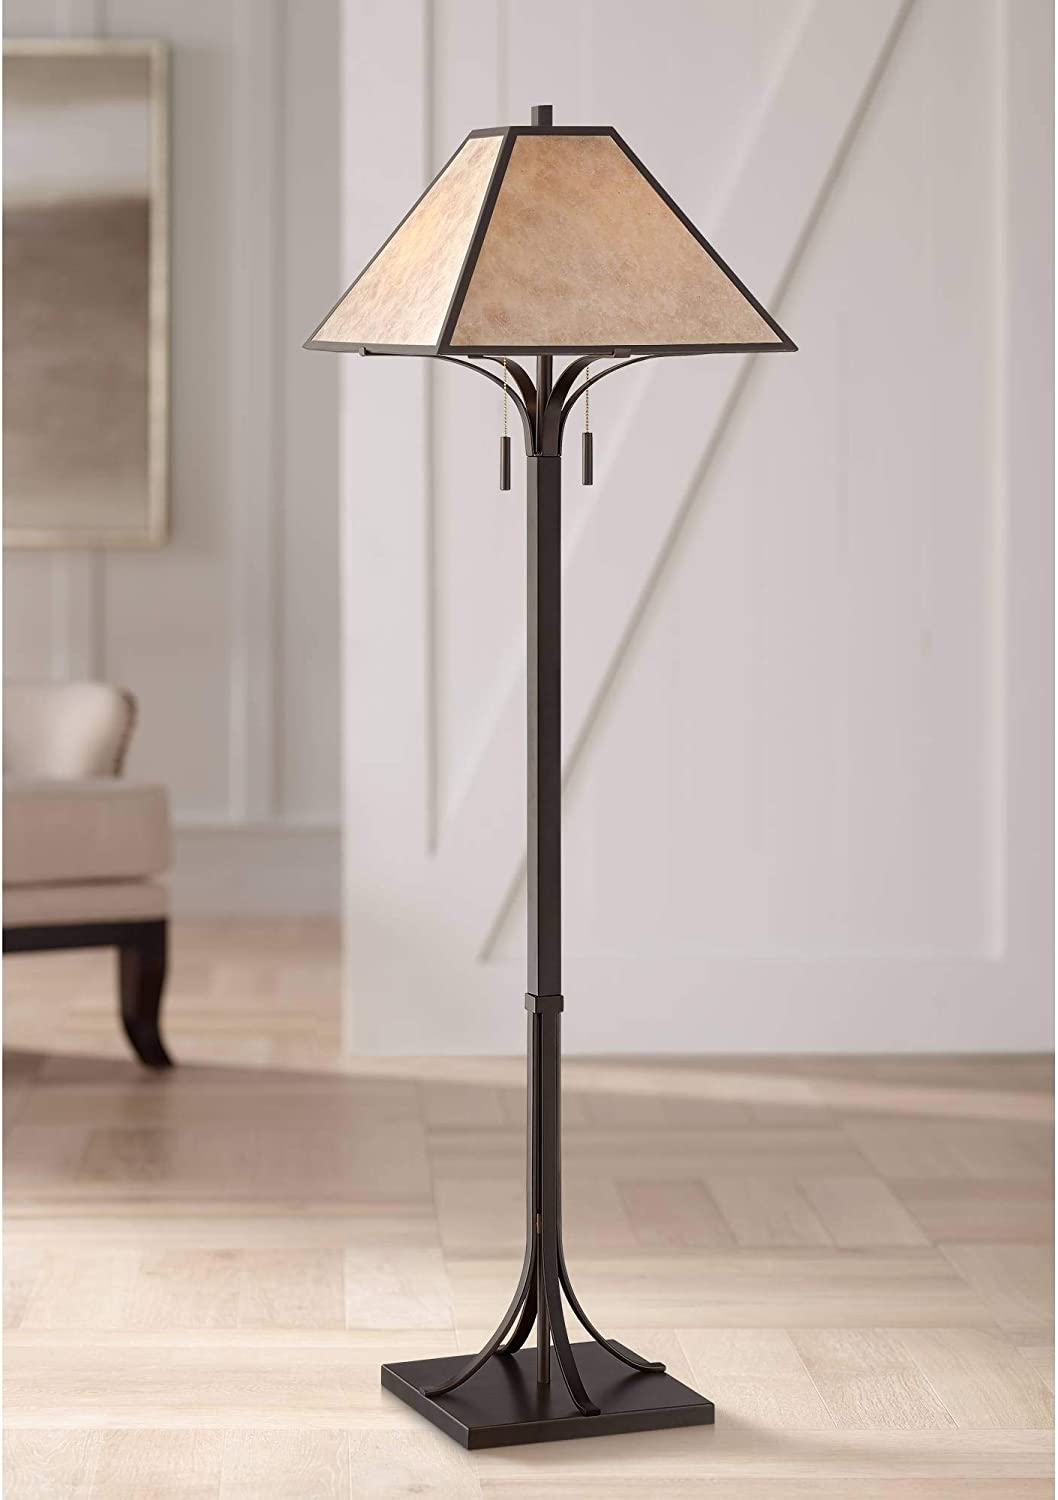 Duarte Mission Rustic Farmhouse Style Standing Floor Lamp Oil Rubbed Bronze Metal Tapering Square Light Mica Shade Decor for Living Room Reading House Bedroom Home Office - Franklin Iron Works